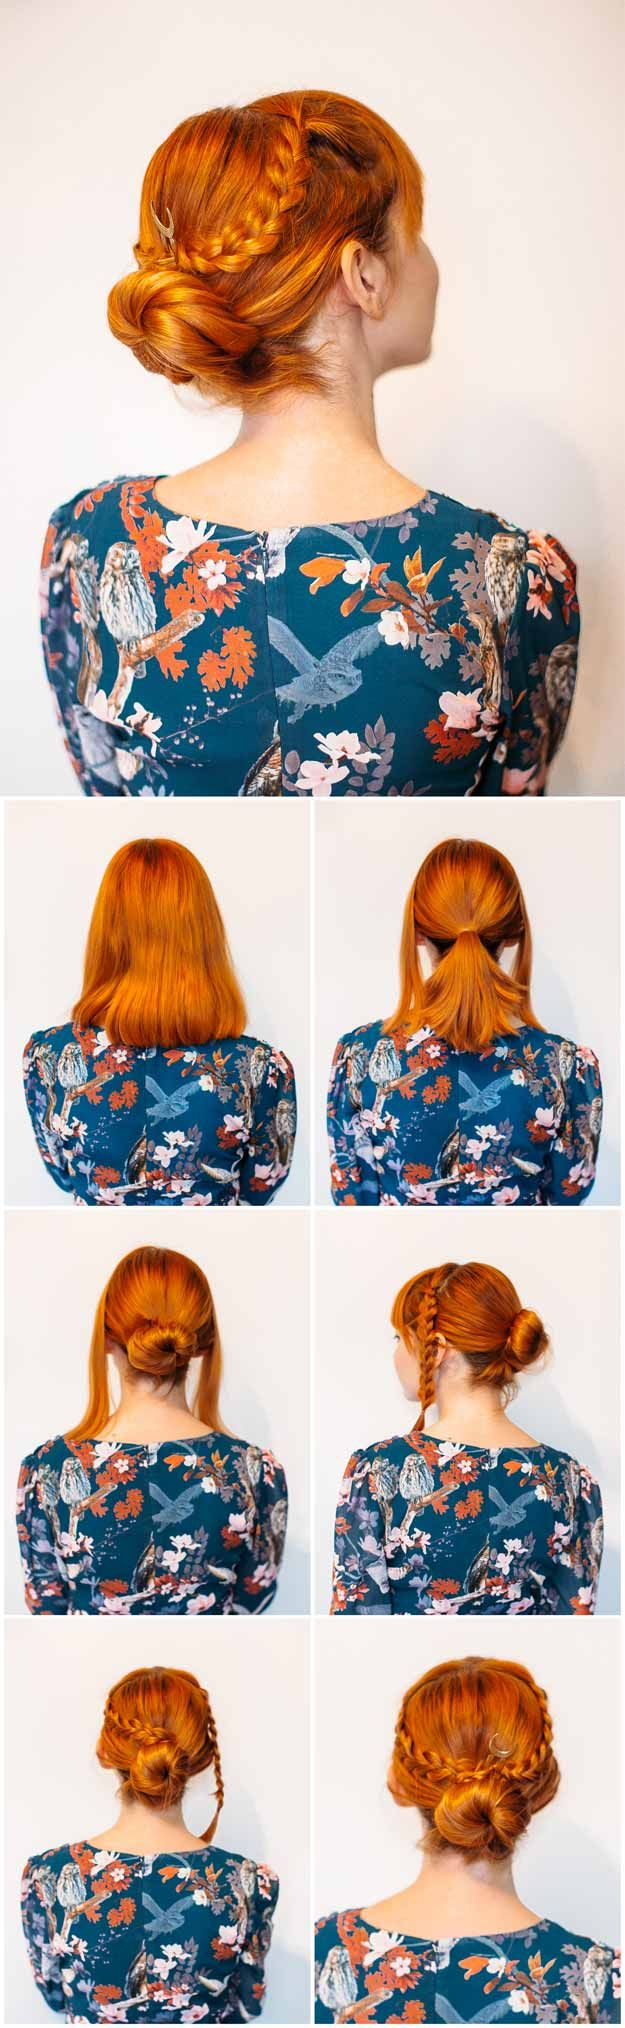 Super Sexy Hairstyles- Easy Criss Cross Braided Bun - Easy Hair Styles For Long Hair, Medium Hair, And For Going Out. If You Have Short Hair, Try These Sexy Hairstyles With Extensions, Or Try A Hair style With Bangs. Try A Sexy Updo Or A Curly Look That Is Shoulder Length. These Tutorials For Sexy Hairstyles And Hairdo's Are Super Simple And Step By Step. Super-Sexy Hairstyles That Are Actually Easy To Do And Will Make You Look Hot. https://thegoddess.com/super-sexy-hairstyles